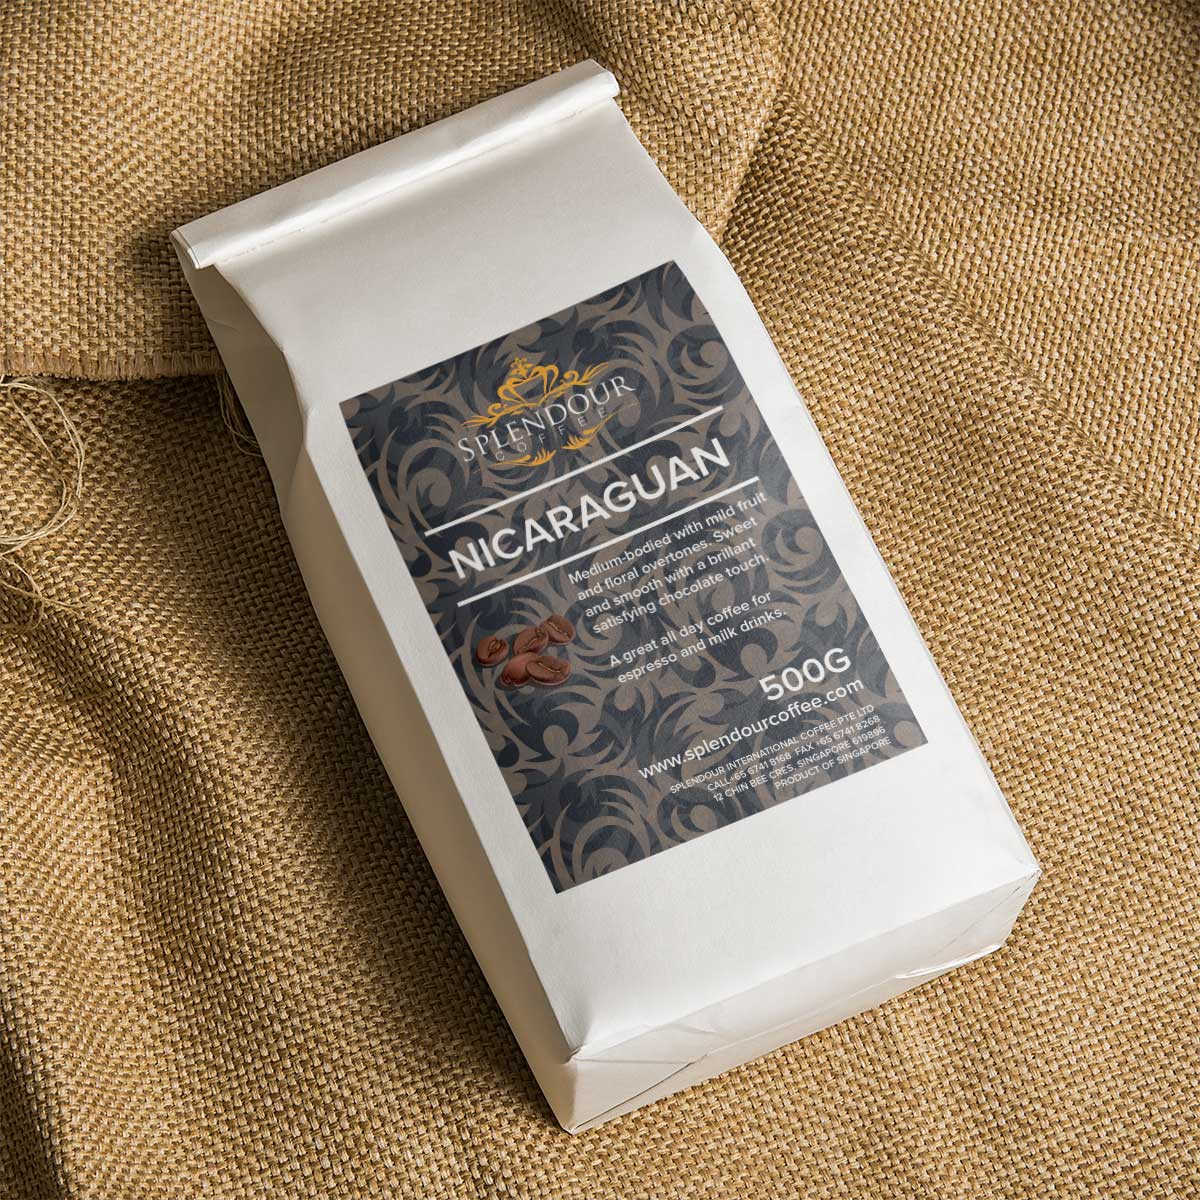 Nicaraguan Roasted Beans (500g)